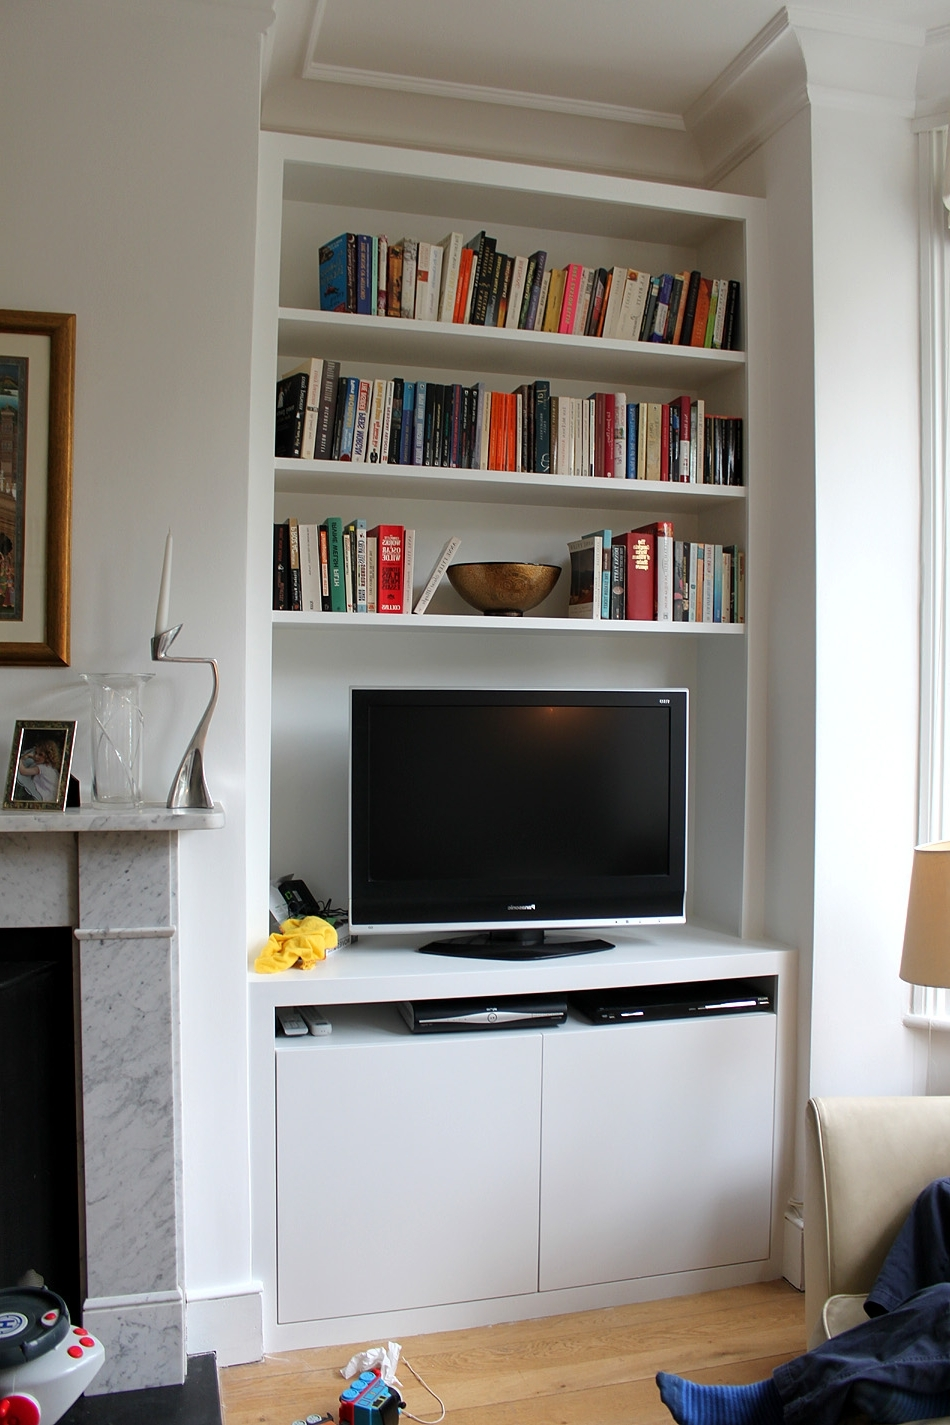 Bookcases Tv In Popular Fitted Wardrobes, Bookcases, Shelving, Floating Shelves, London (View 8 of 15)